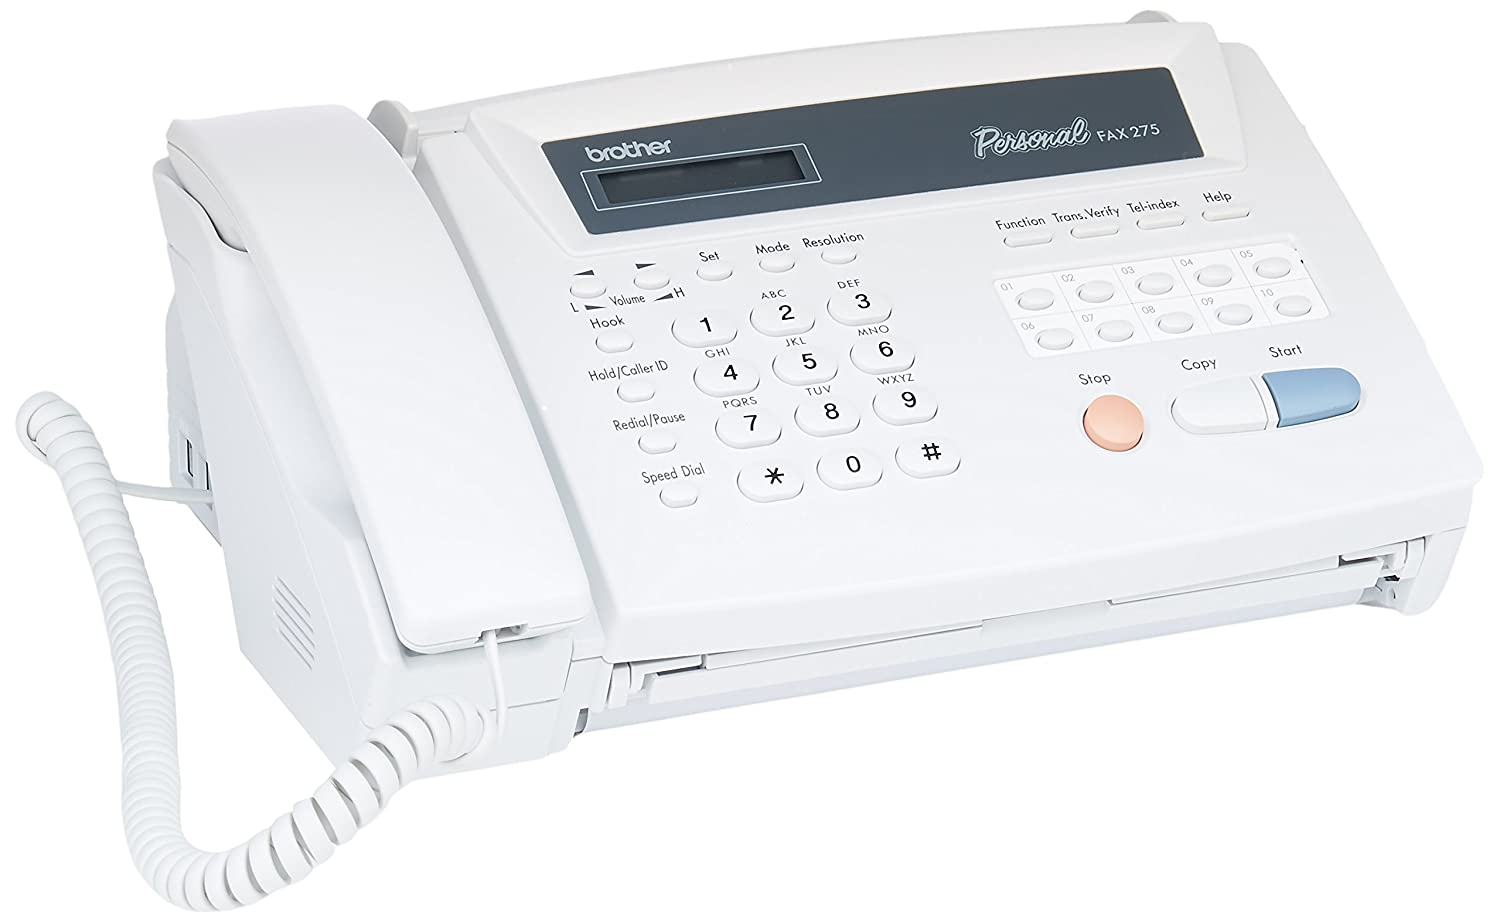 Brother FAX275 Personal Fax and Telephone Fax Machines (Facsimile)